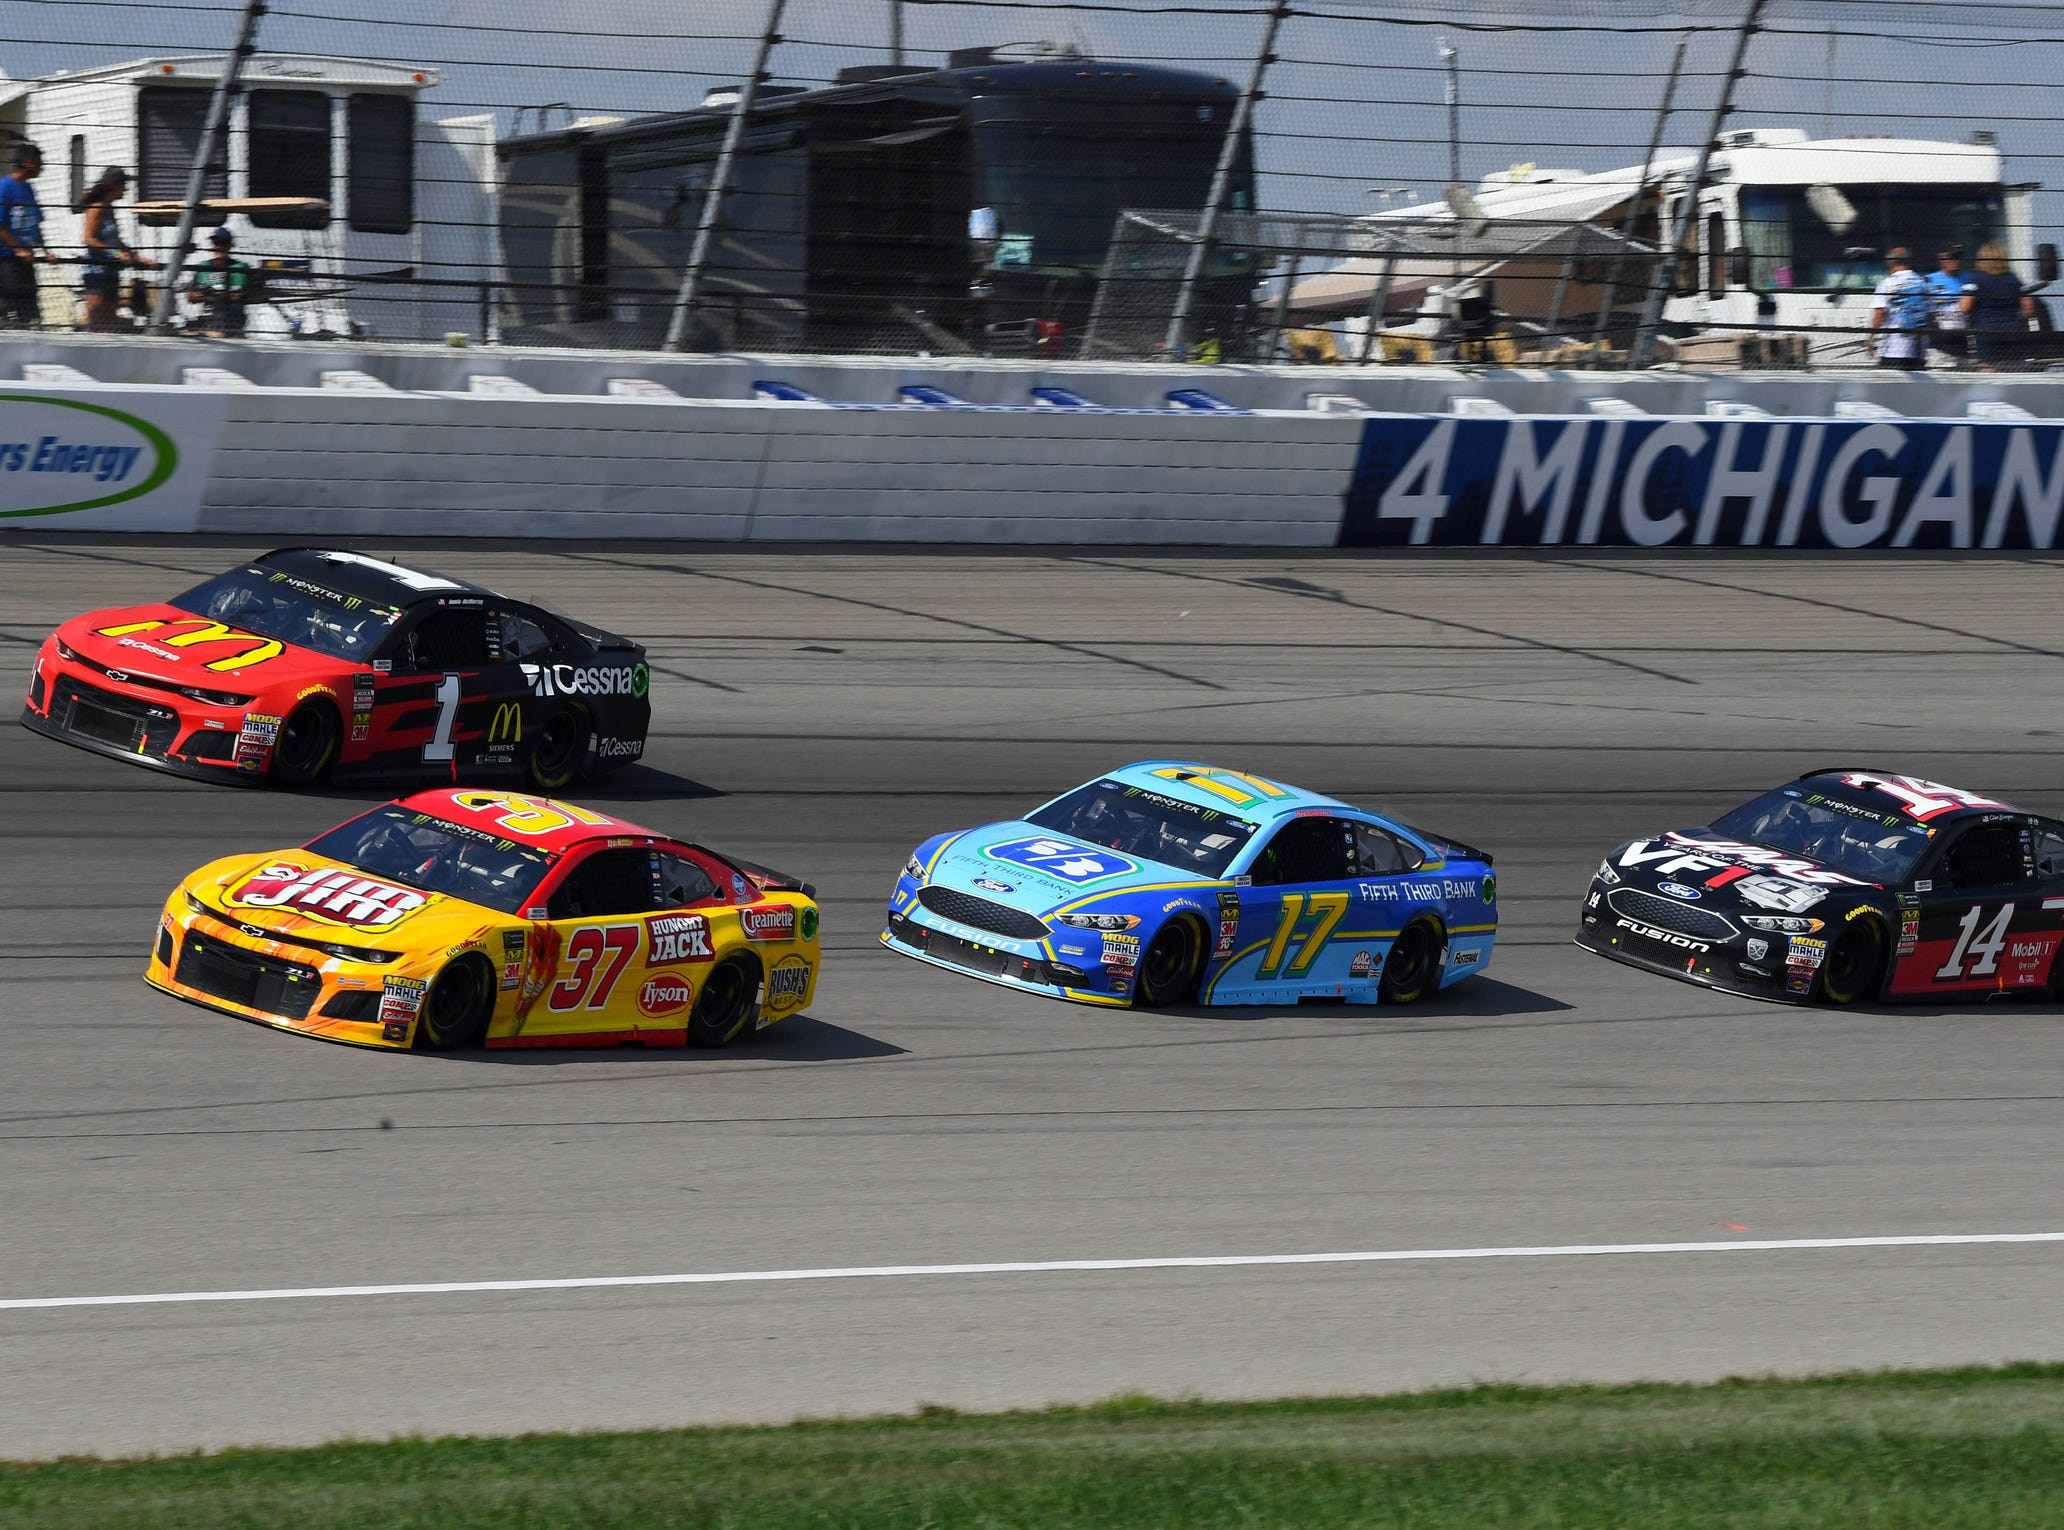 Chris Buescher (37), Jamie Mcmurray (1), Ricky Stenhouse Jr. (17), and Clint Bowyer (14) race during the Consumers Energy 400 at Michigan International Speedway.